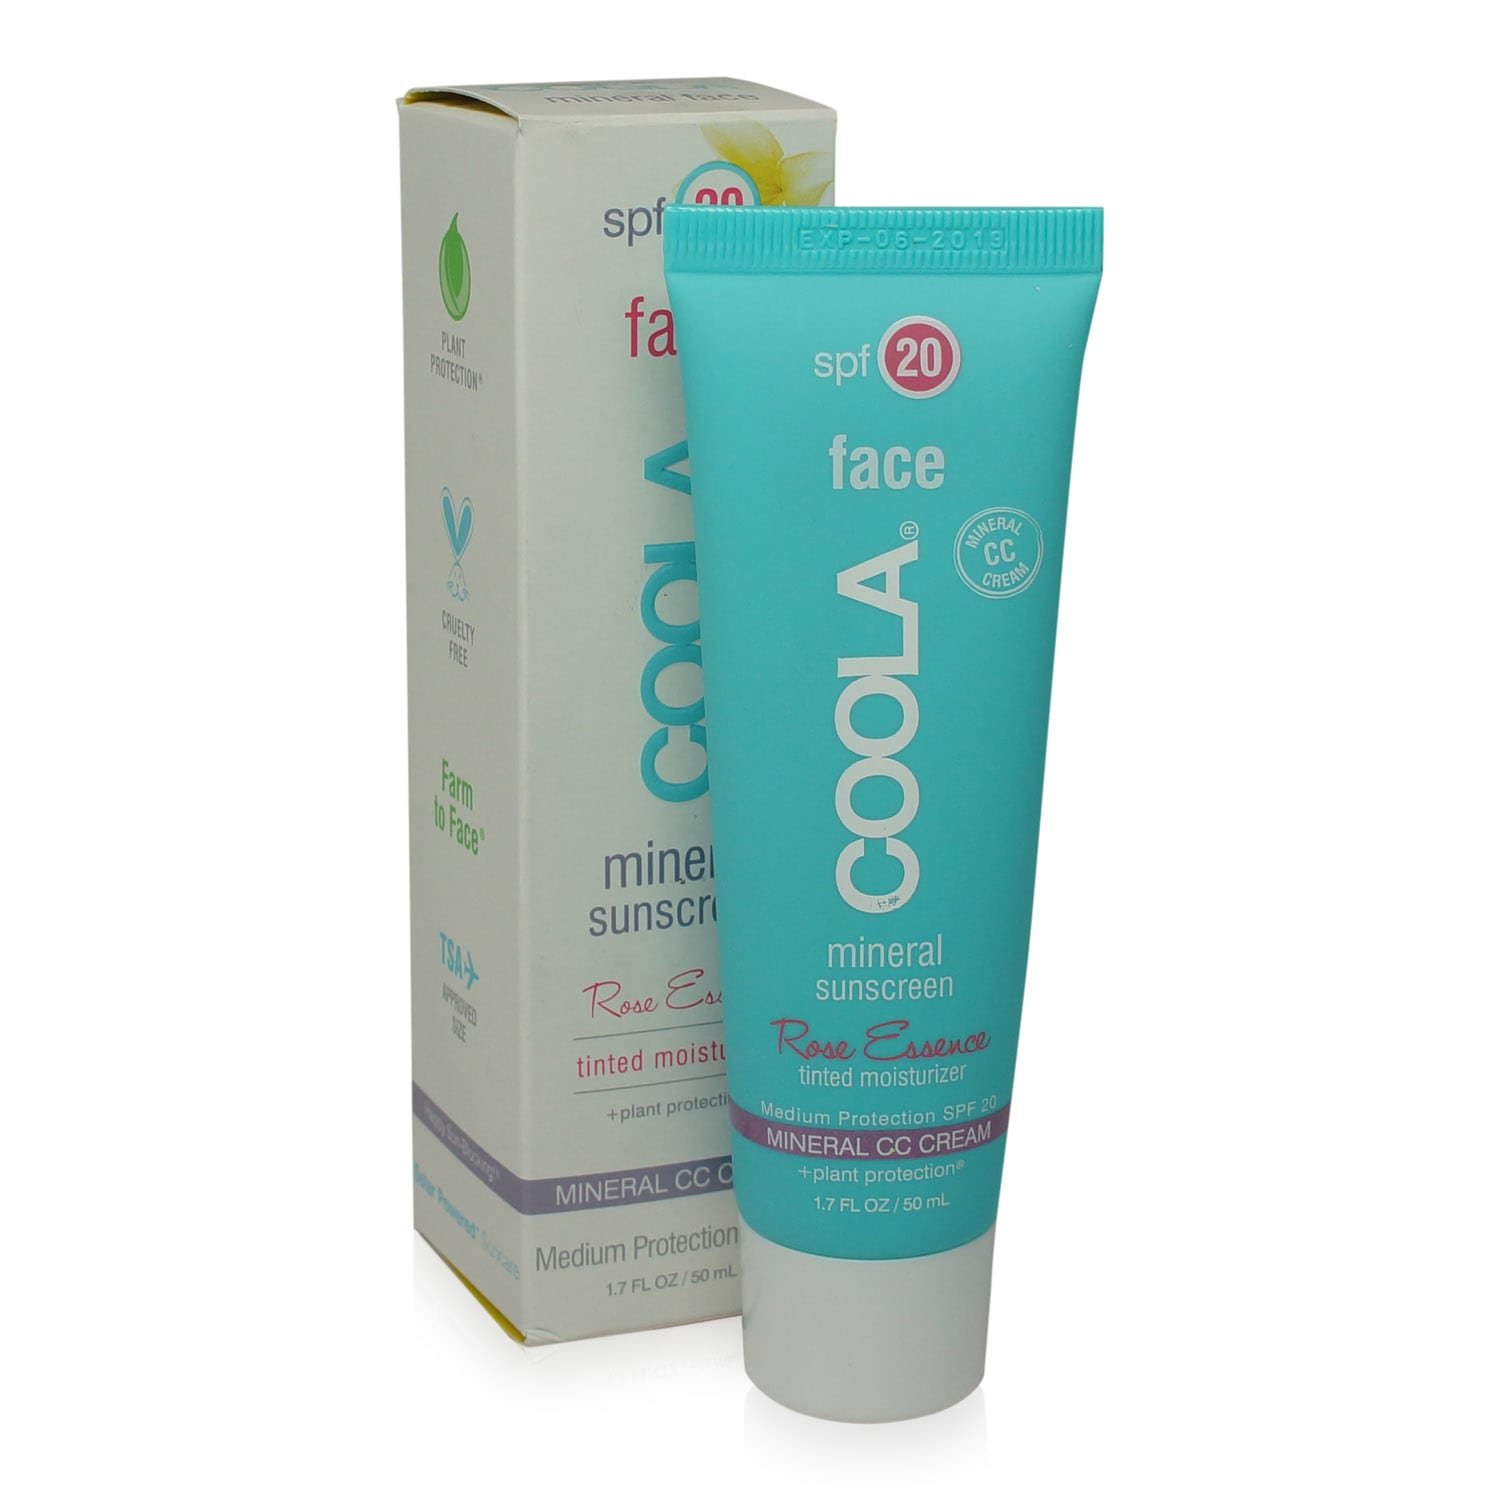 Coola Face Rose Tinted Sunscreen Lotion SPF 20